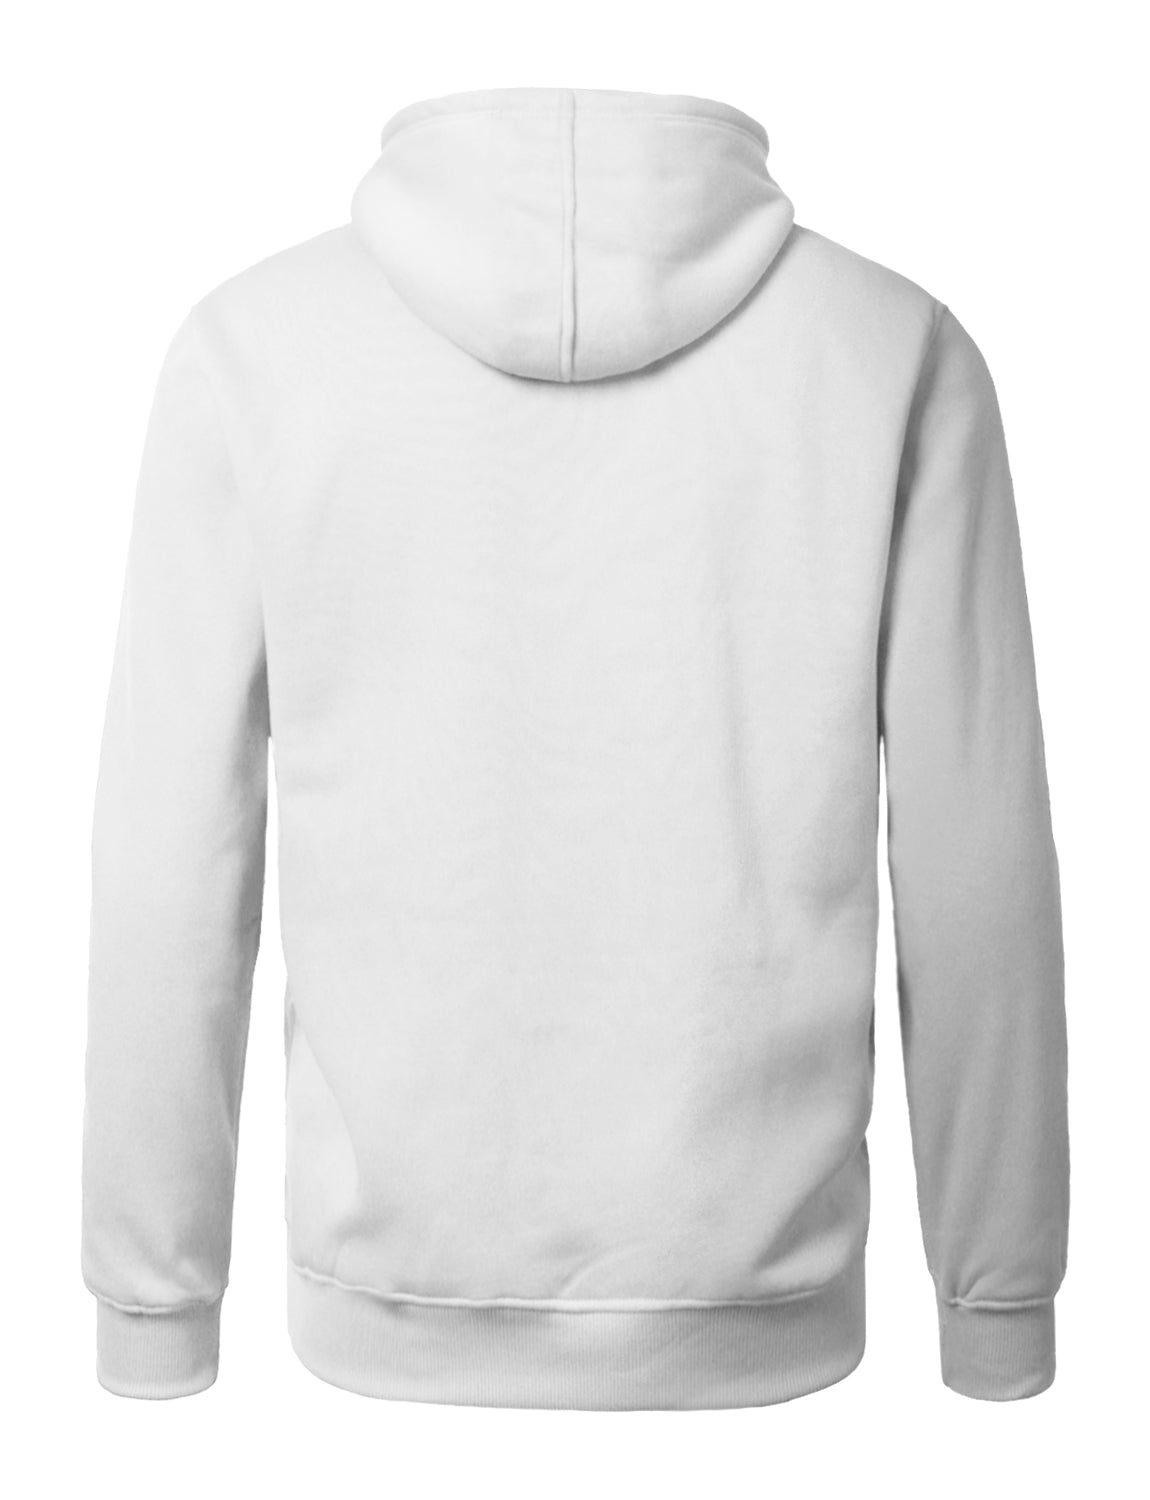 WHITE Lightweight Zip Up Fleece Hoodie - URBANCREWS